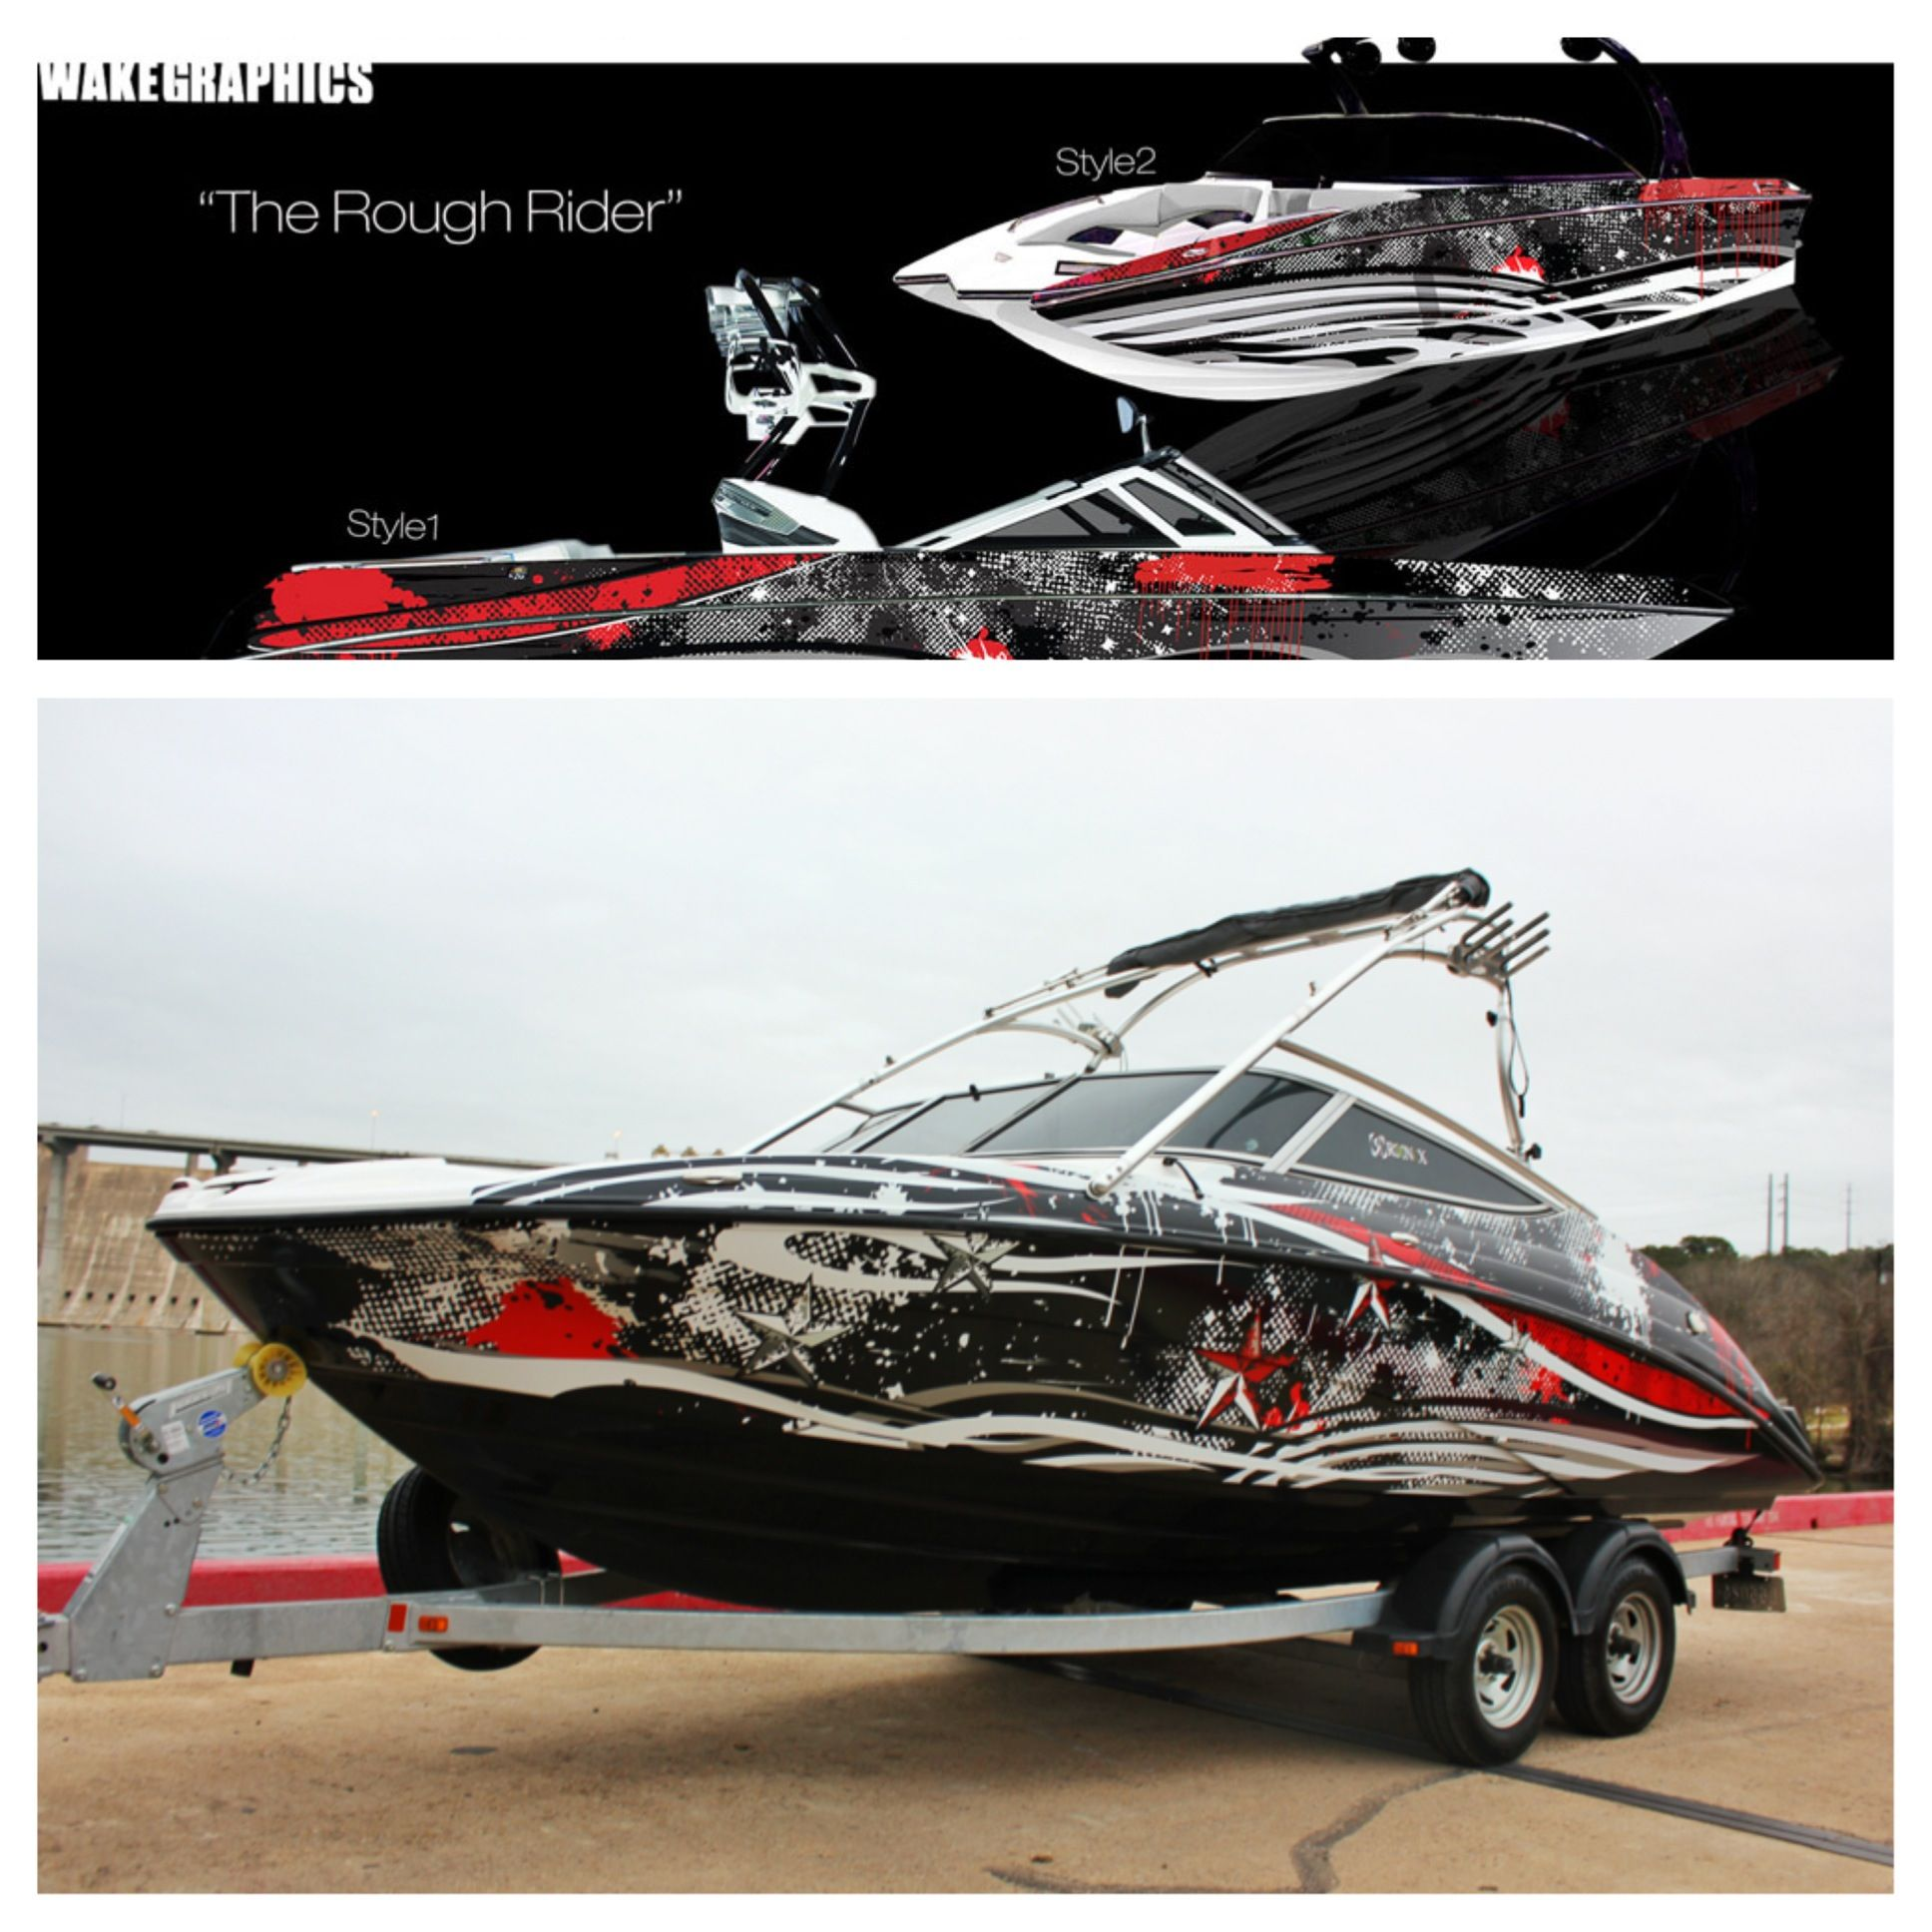 vehicle - Boat Graphics Designs Ideas